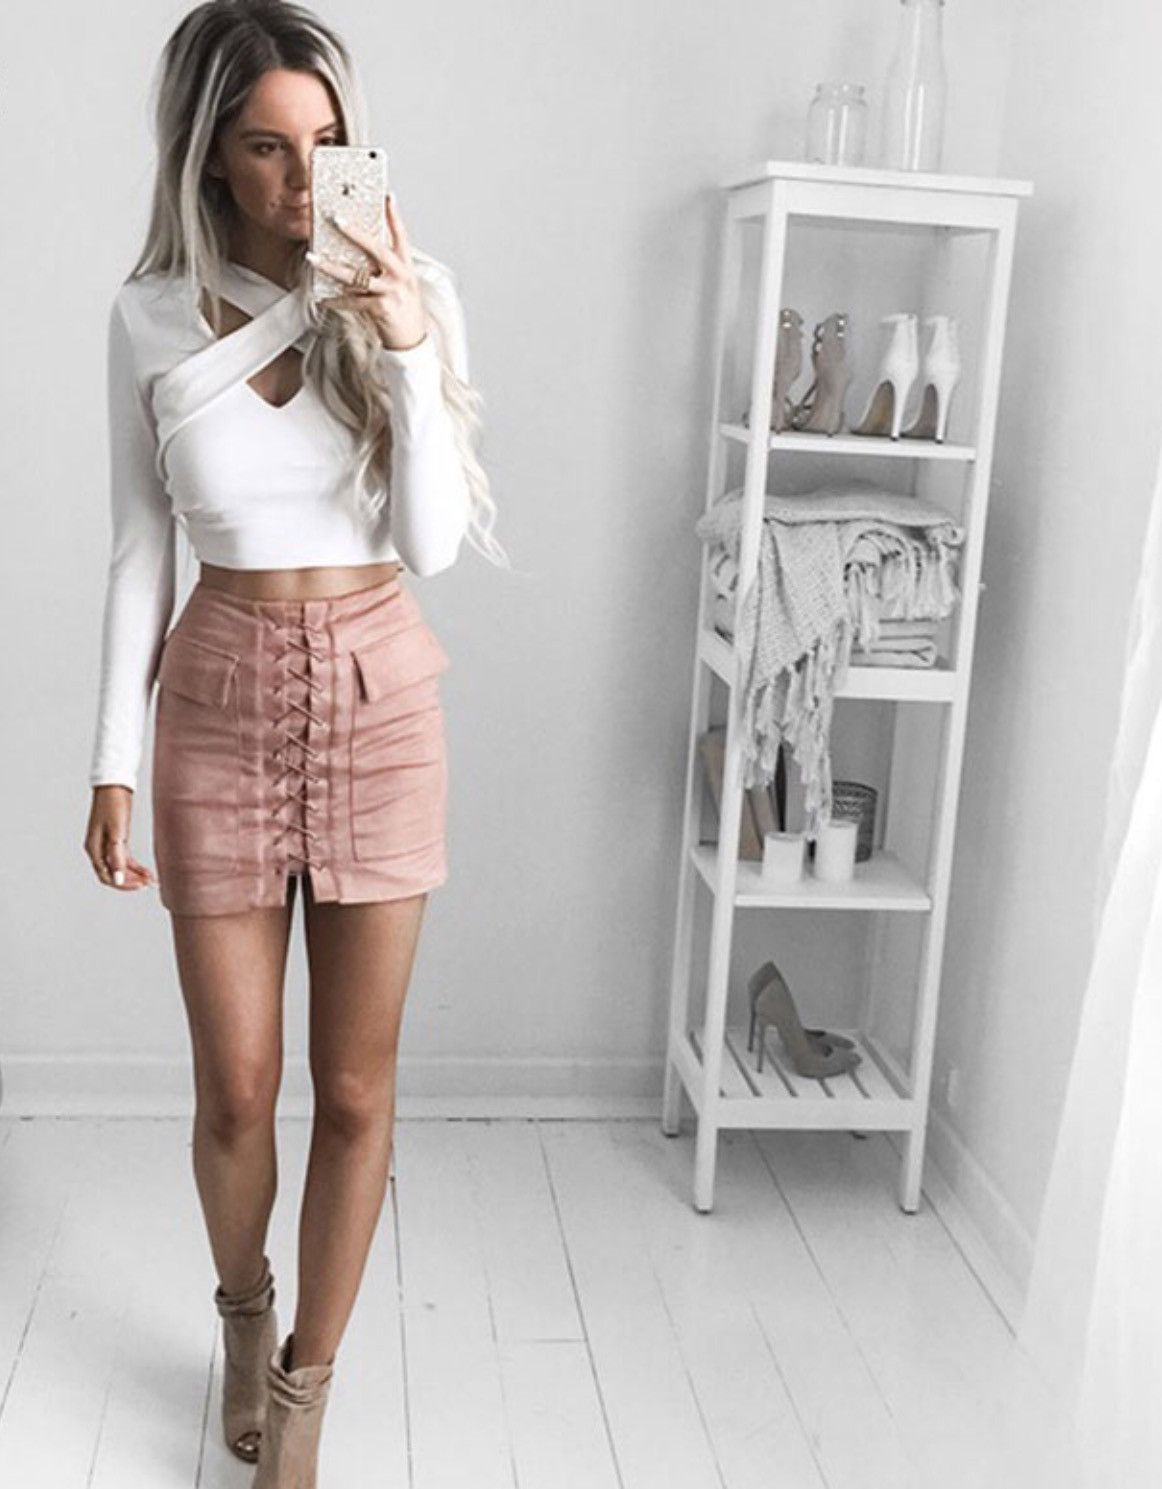 ee1b03e065 Lace-up suede mini skirt in dusty pink | Anything but my birthday ...